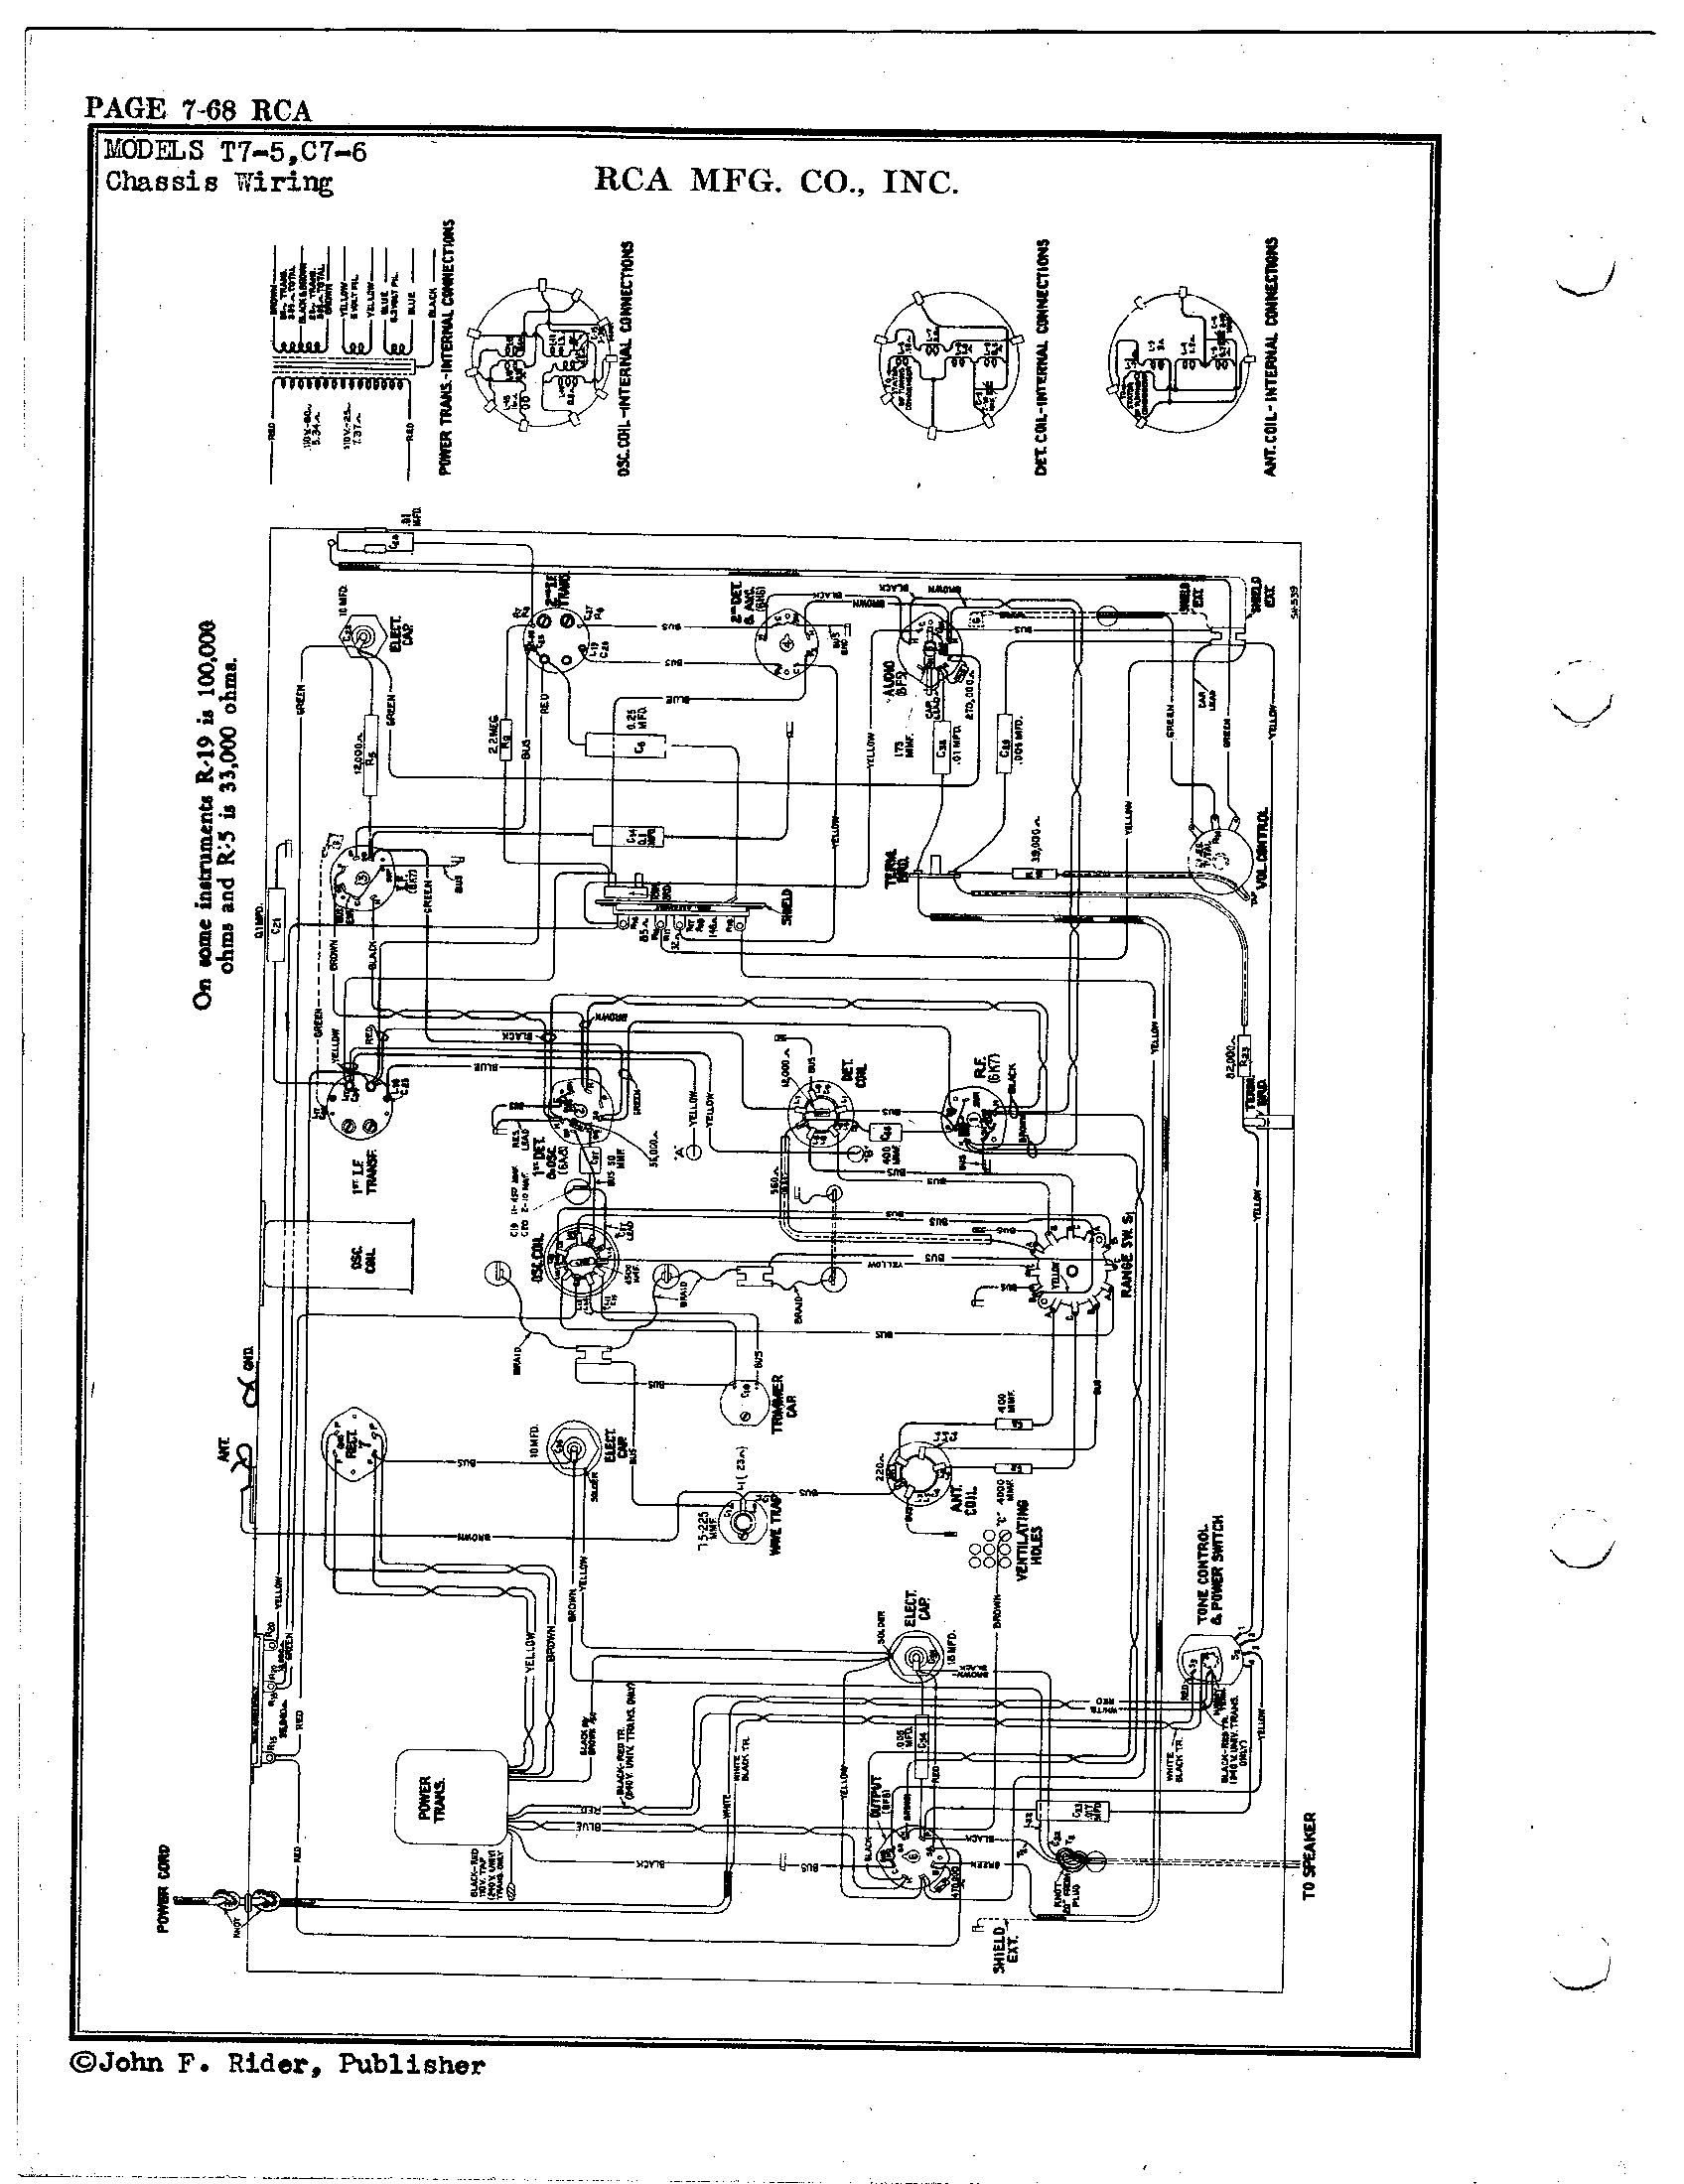 Rca Victor Co Inc C7 6 Antique Electronic Supply Amplifier Circuit Tubeamplifier Audiocircuit Diagram Page 2 6136 Kb Rider Manual Volume 7